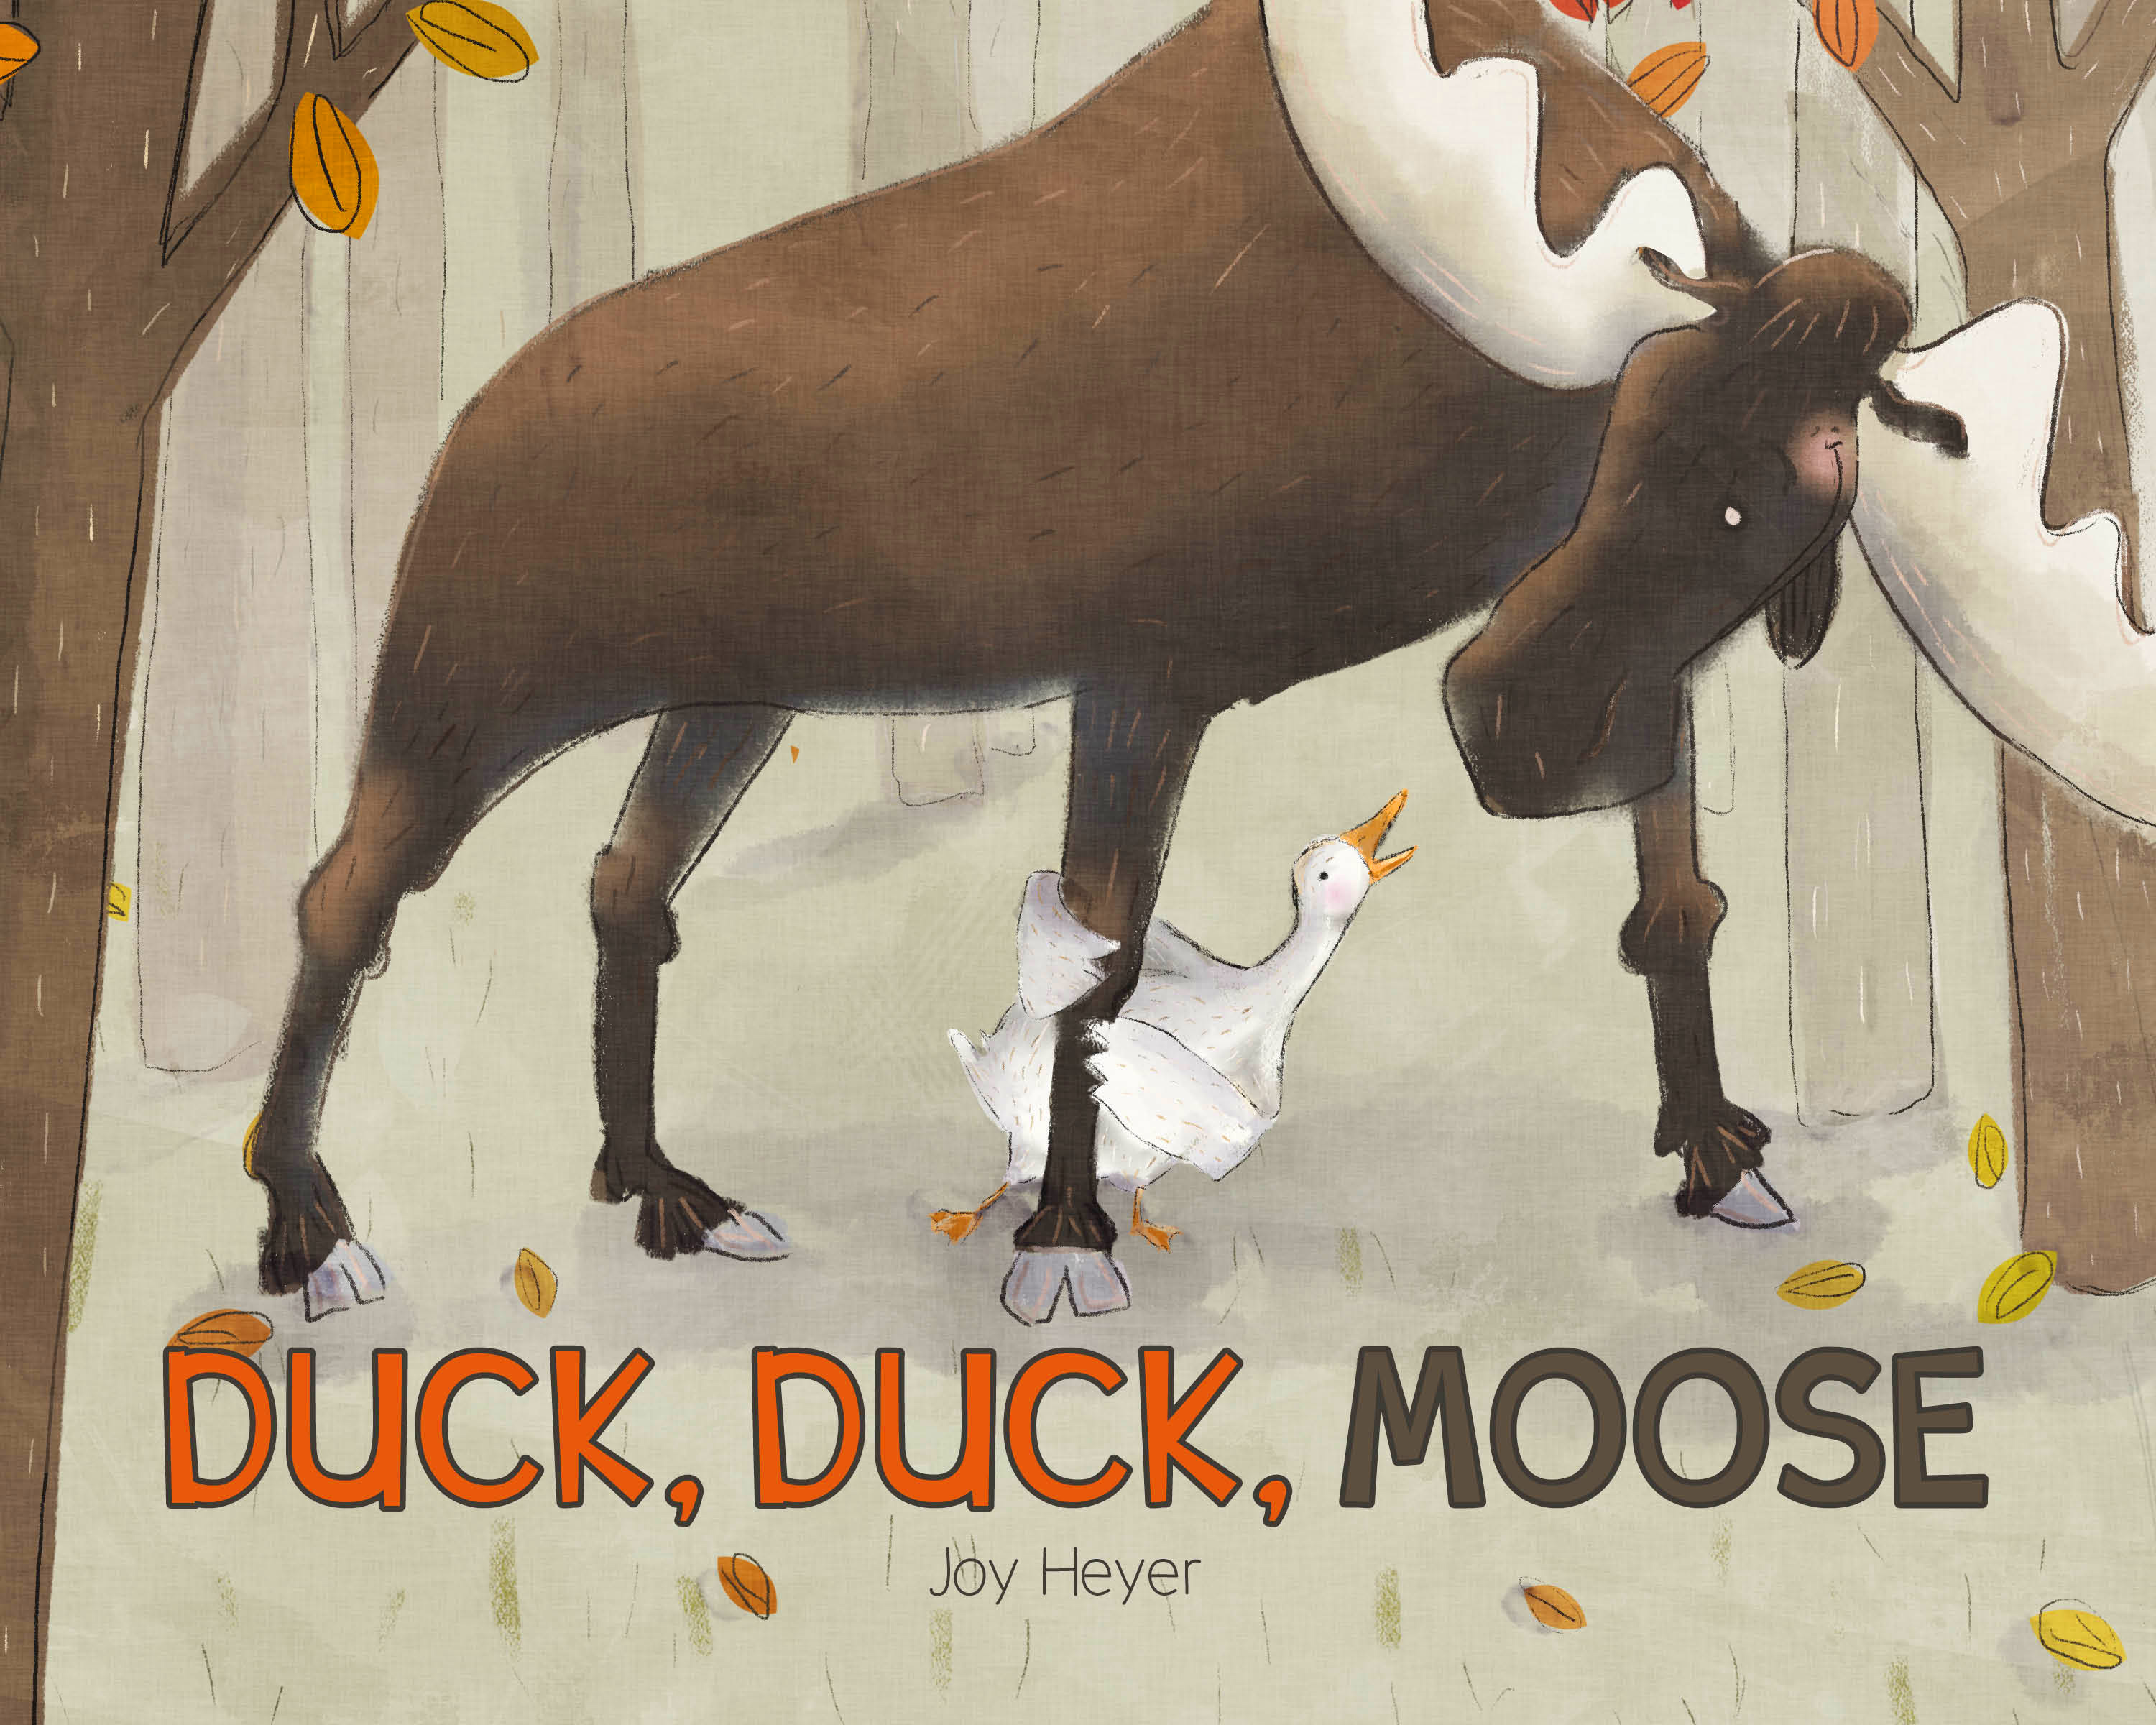 Duck, Duck, Moose by Joy Heyer